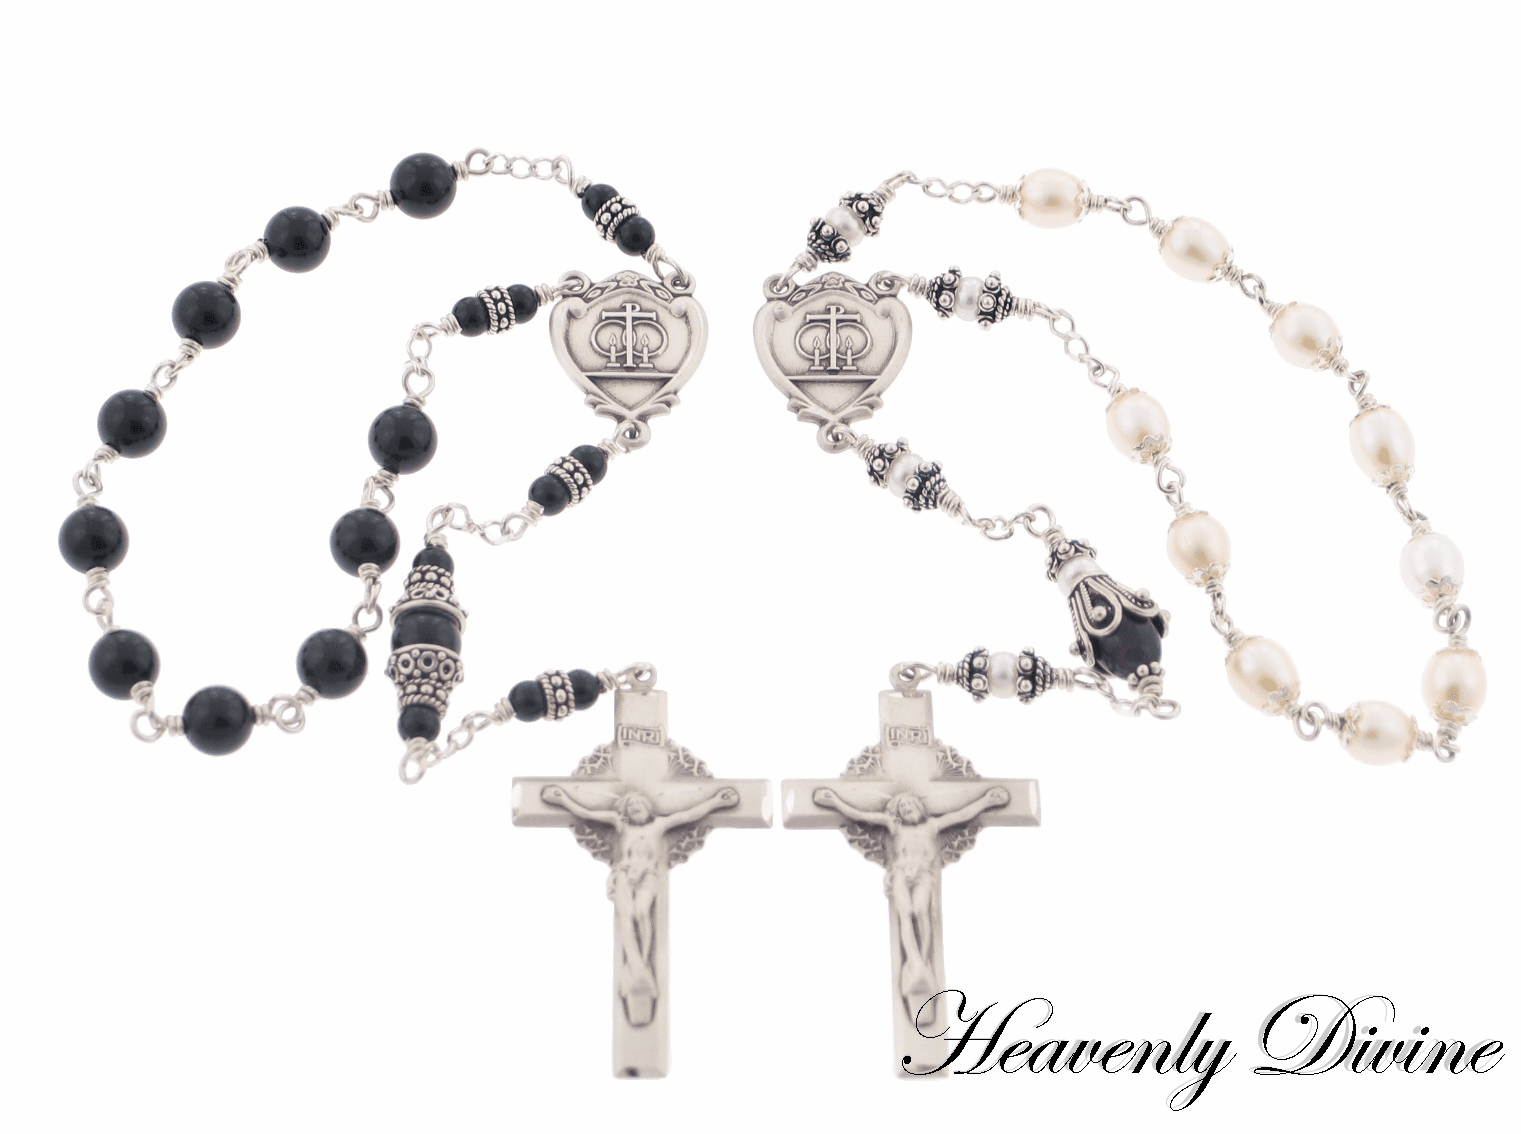 Sterling Silver Wedding or Anniversary One Decade Rosary Set by Heavenly Divine